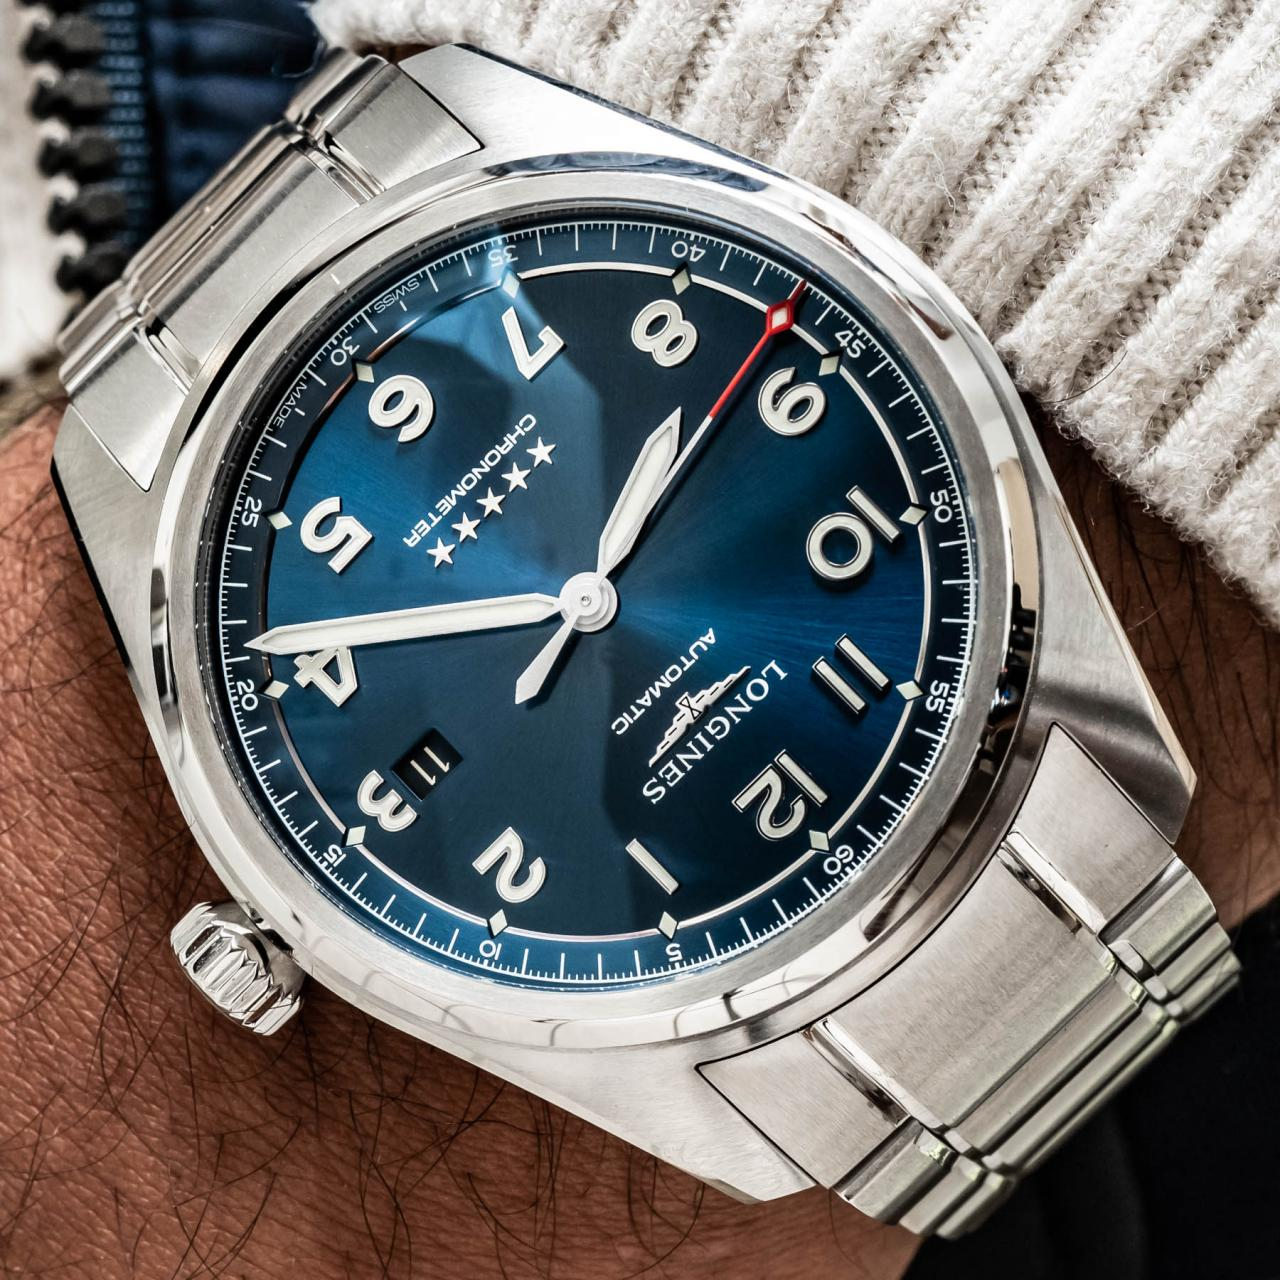 Hands-On With The New Longines Spirit 42mm Pilot's fake Watch Hands-On